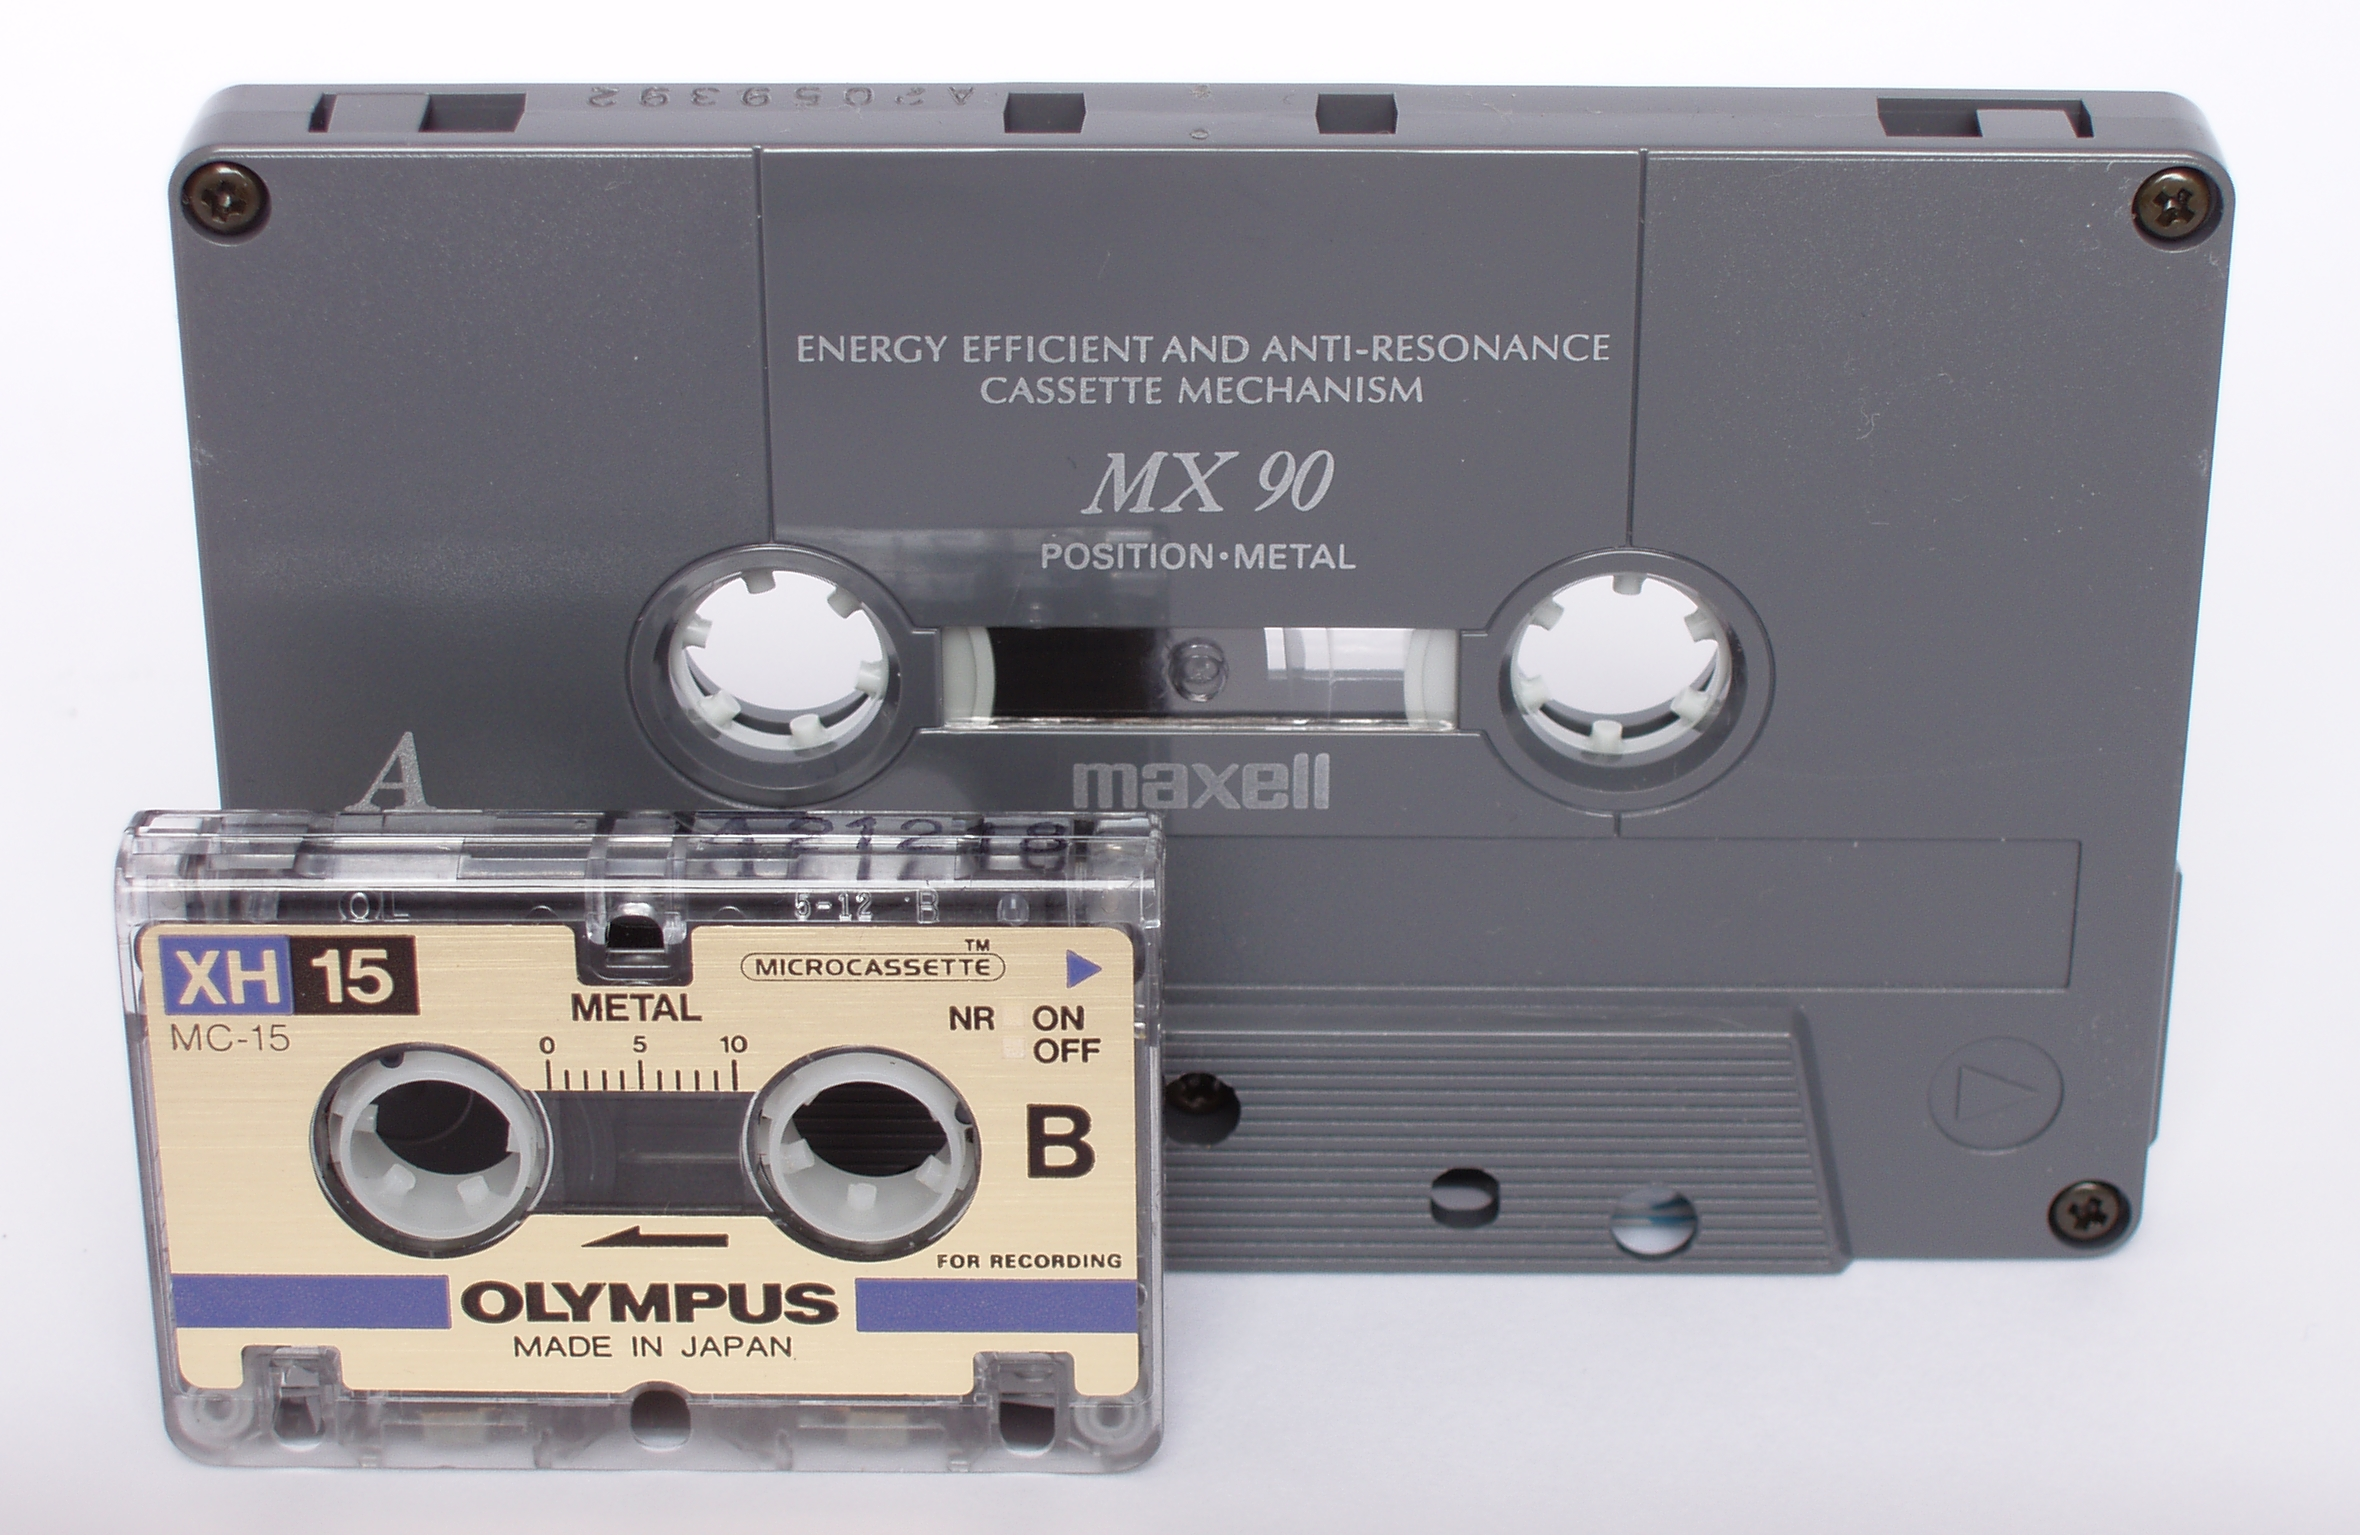 http://upload.wikimedia.org/wikipedia/commons/4/42/CassetteAndMicrocassette.jpg